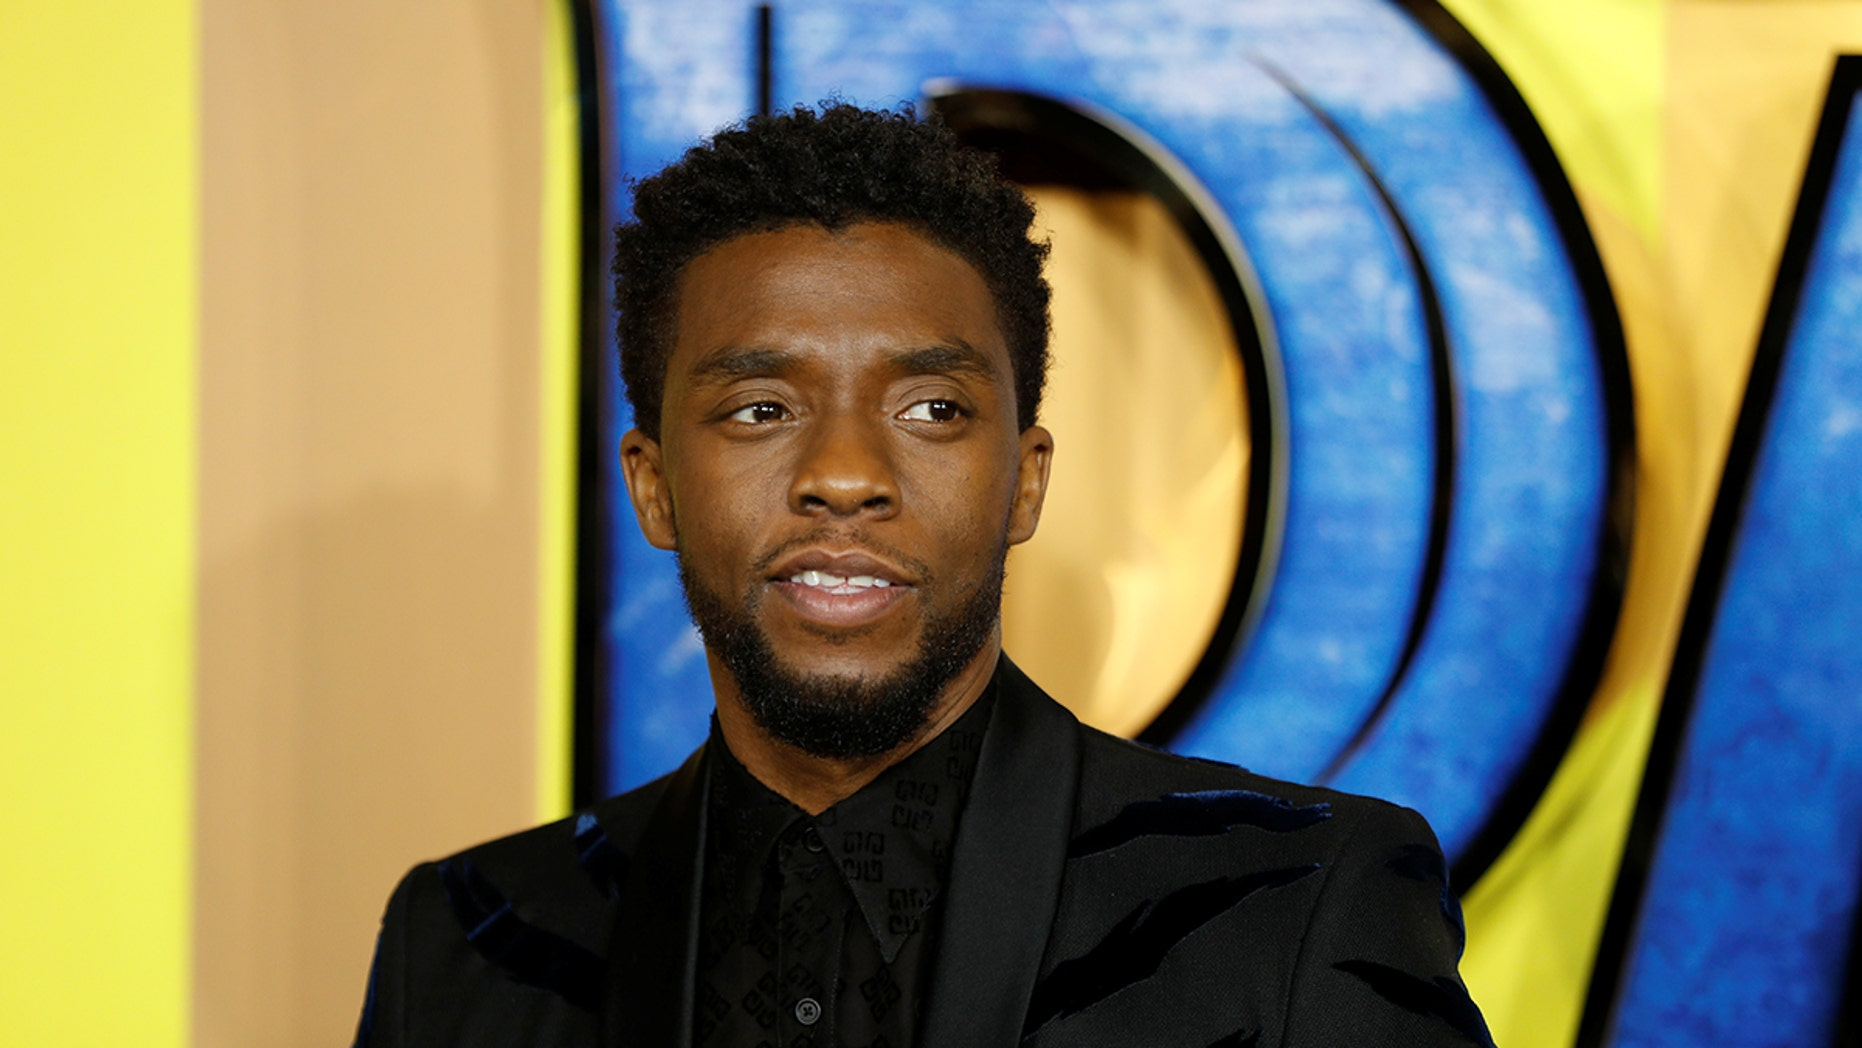 Actor Chadwick Boseman arrives at the premiere of the new Marvel superhero film 'Black Panther' in London, Britain February 8, 2018. REUTERS/Peter Nicholls - RC13C3720770